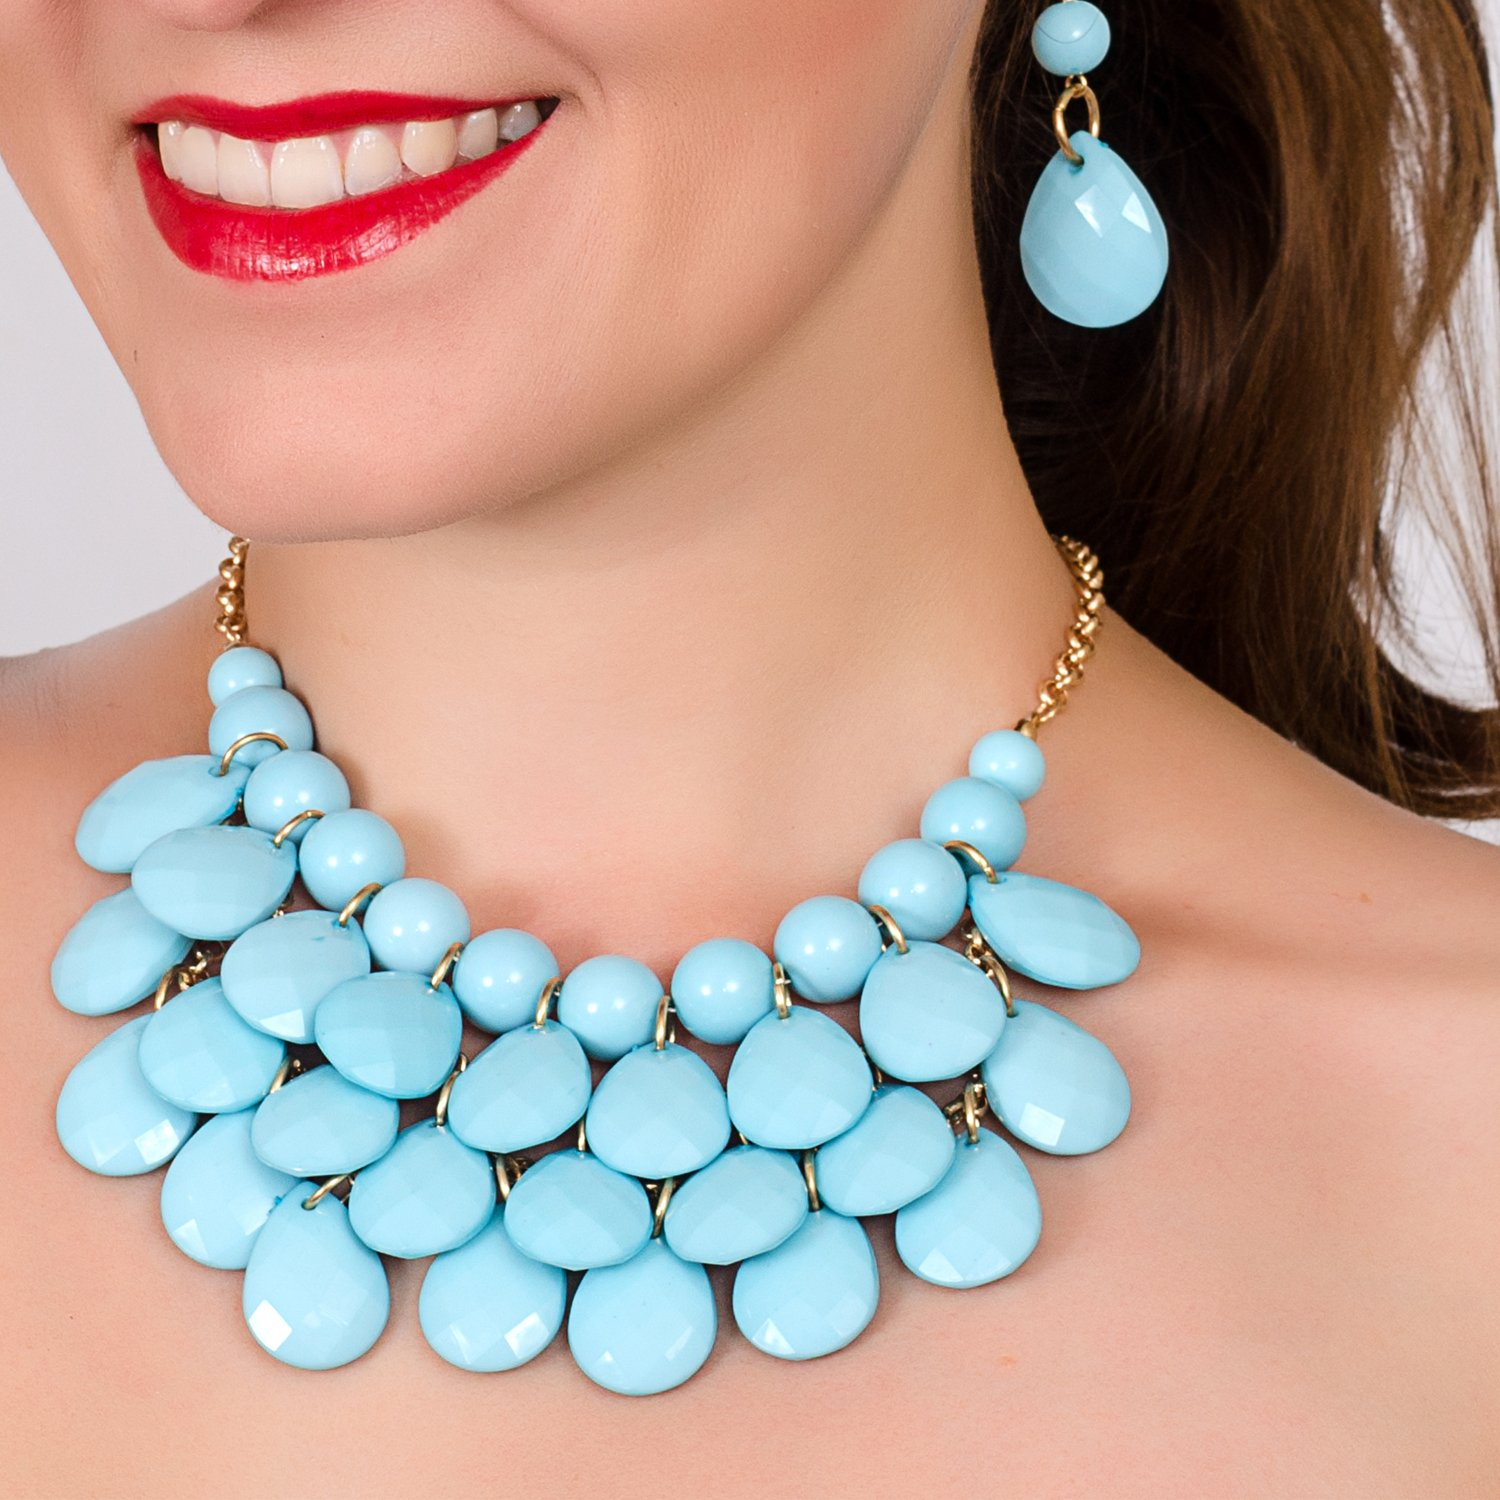 Vintage Style Jewelry, Retro Jewelry Jane Stone Fashion Floating Bubble Necklace Teardrop Bib Collar Statement Jewelry for Women $10.89 AT vintagedancer.com